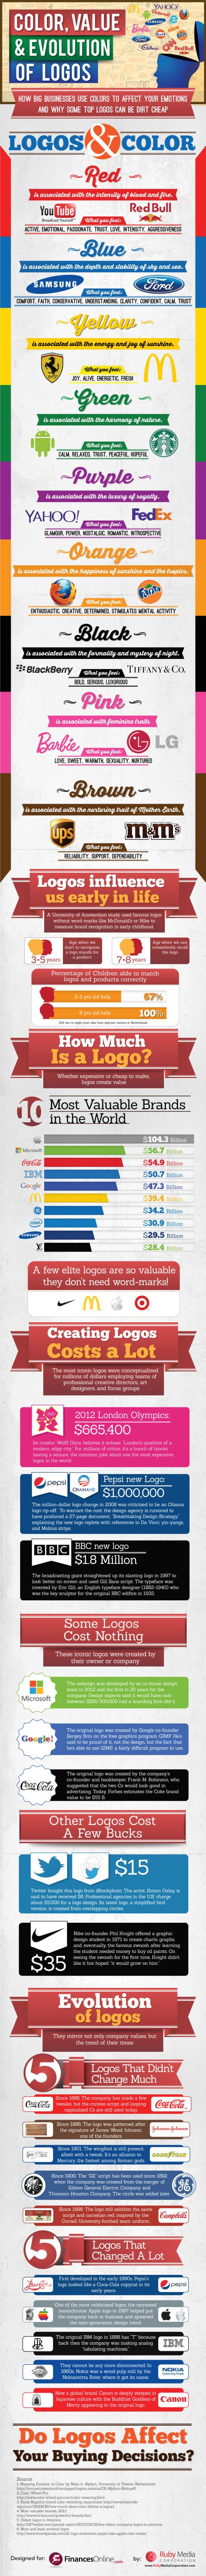 Color, Value & Evolution Of Logos